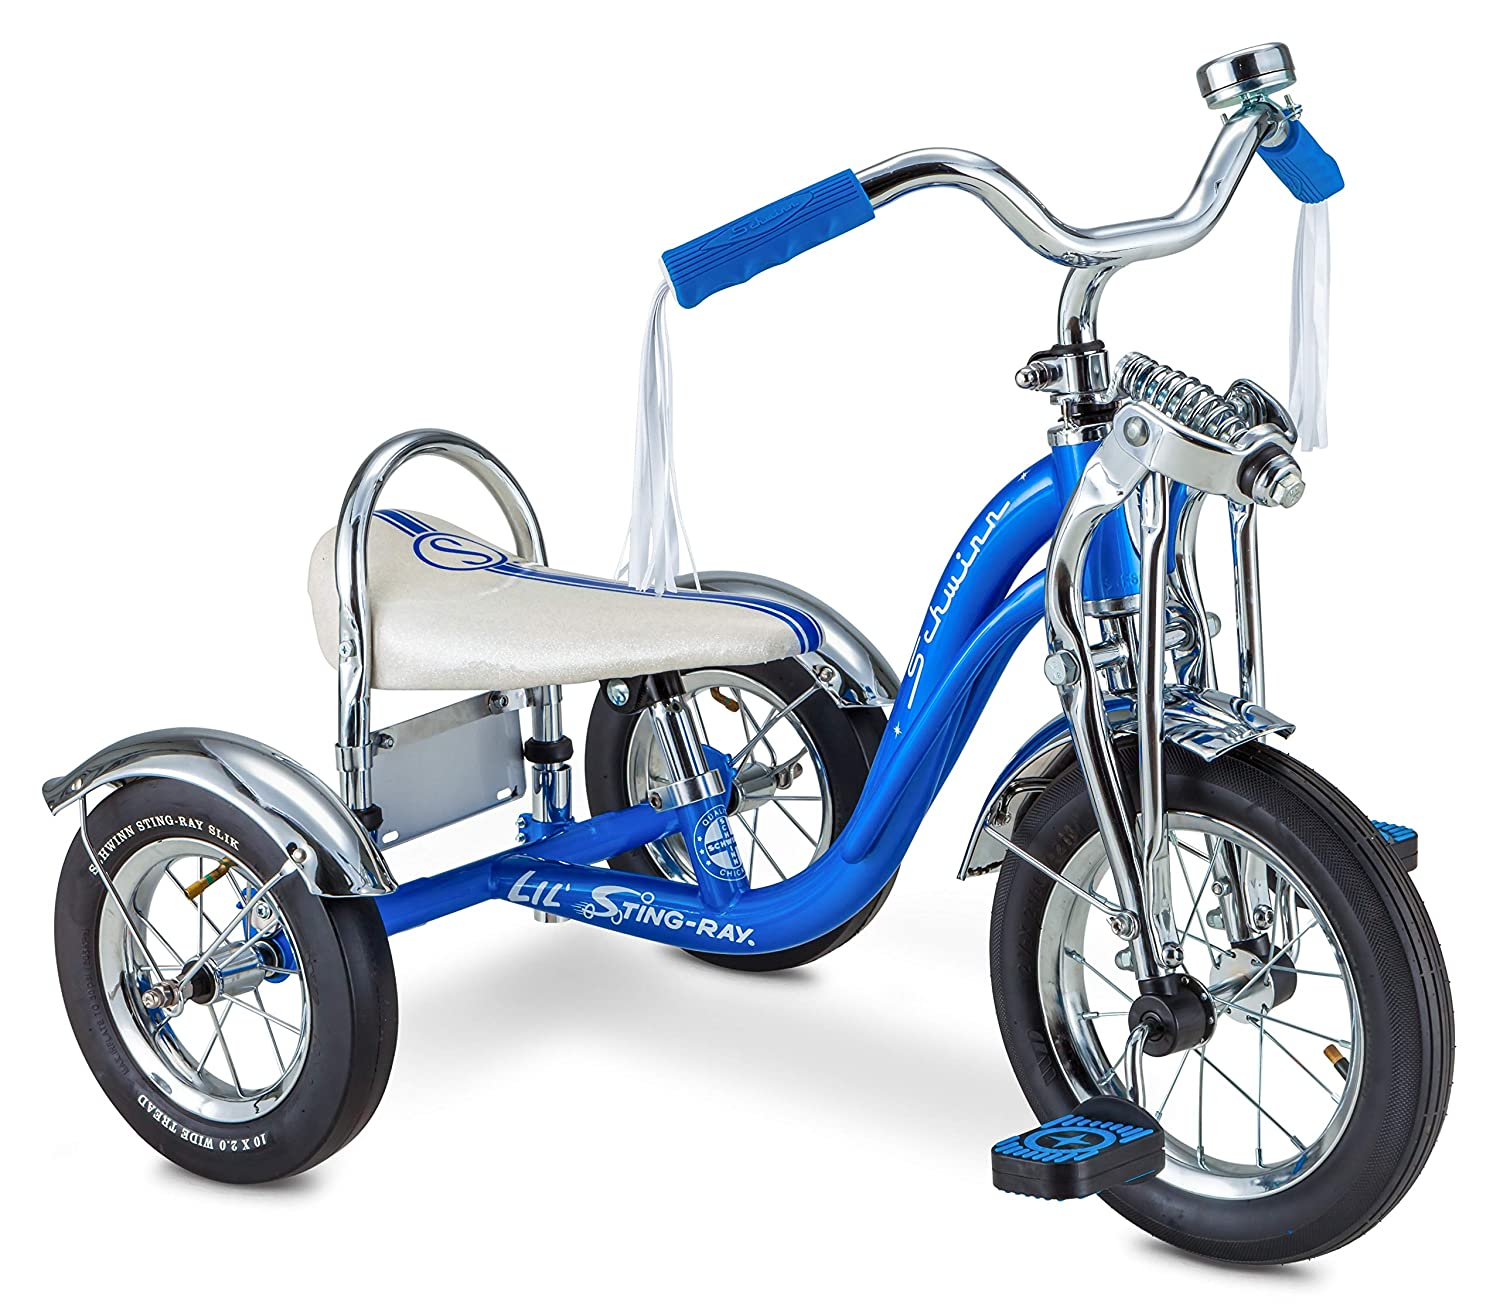 12 Front Wheel Blue Schwinn Lil Sting-Ray Super Deluxe Tricycle for Kids 2-4 Years Old